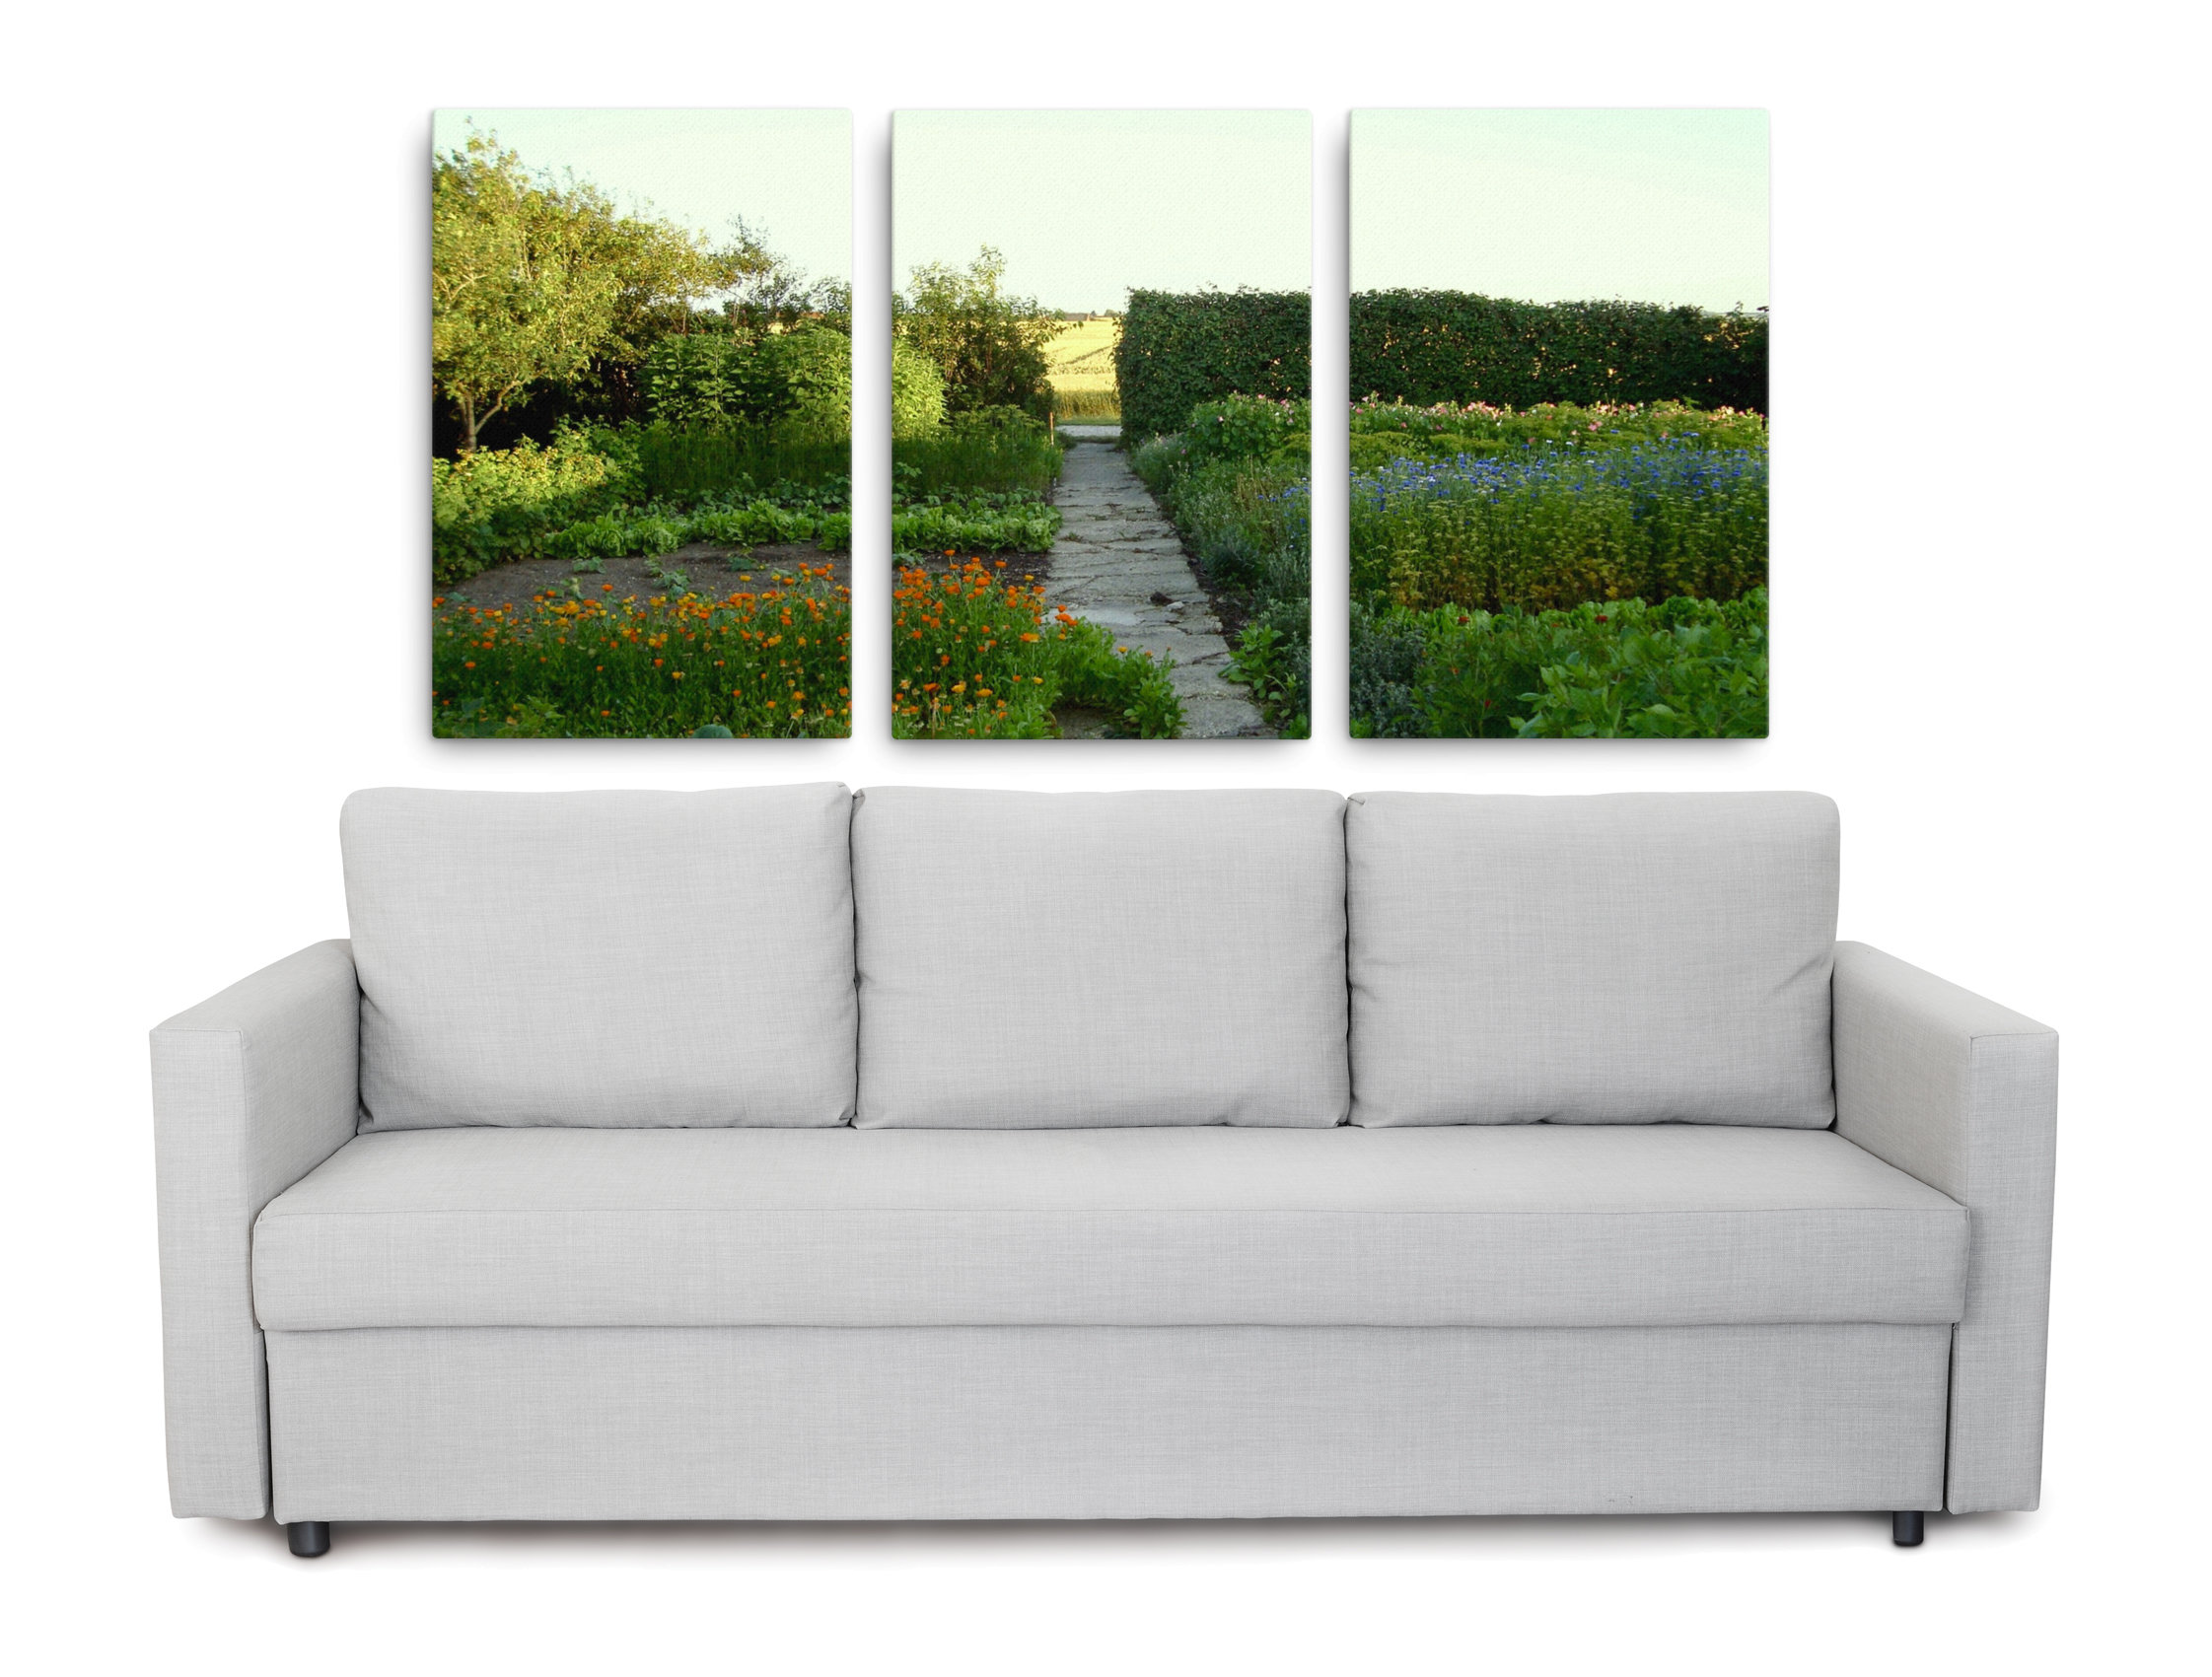 Product picture of country garden canvas prints